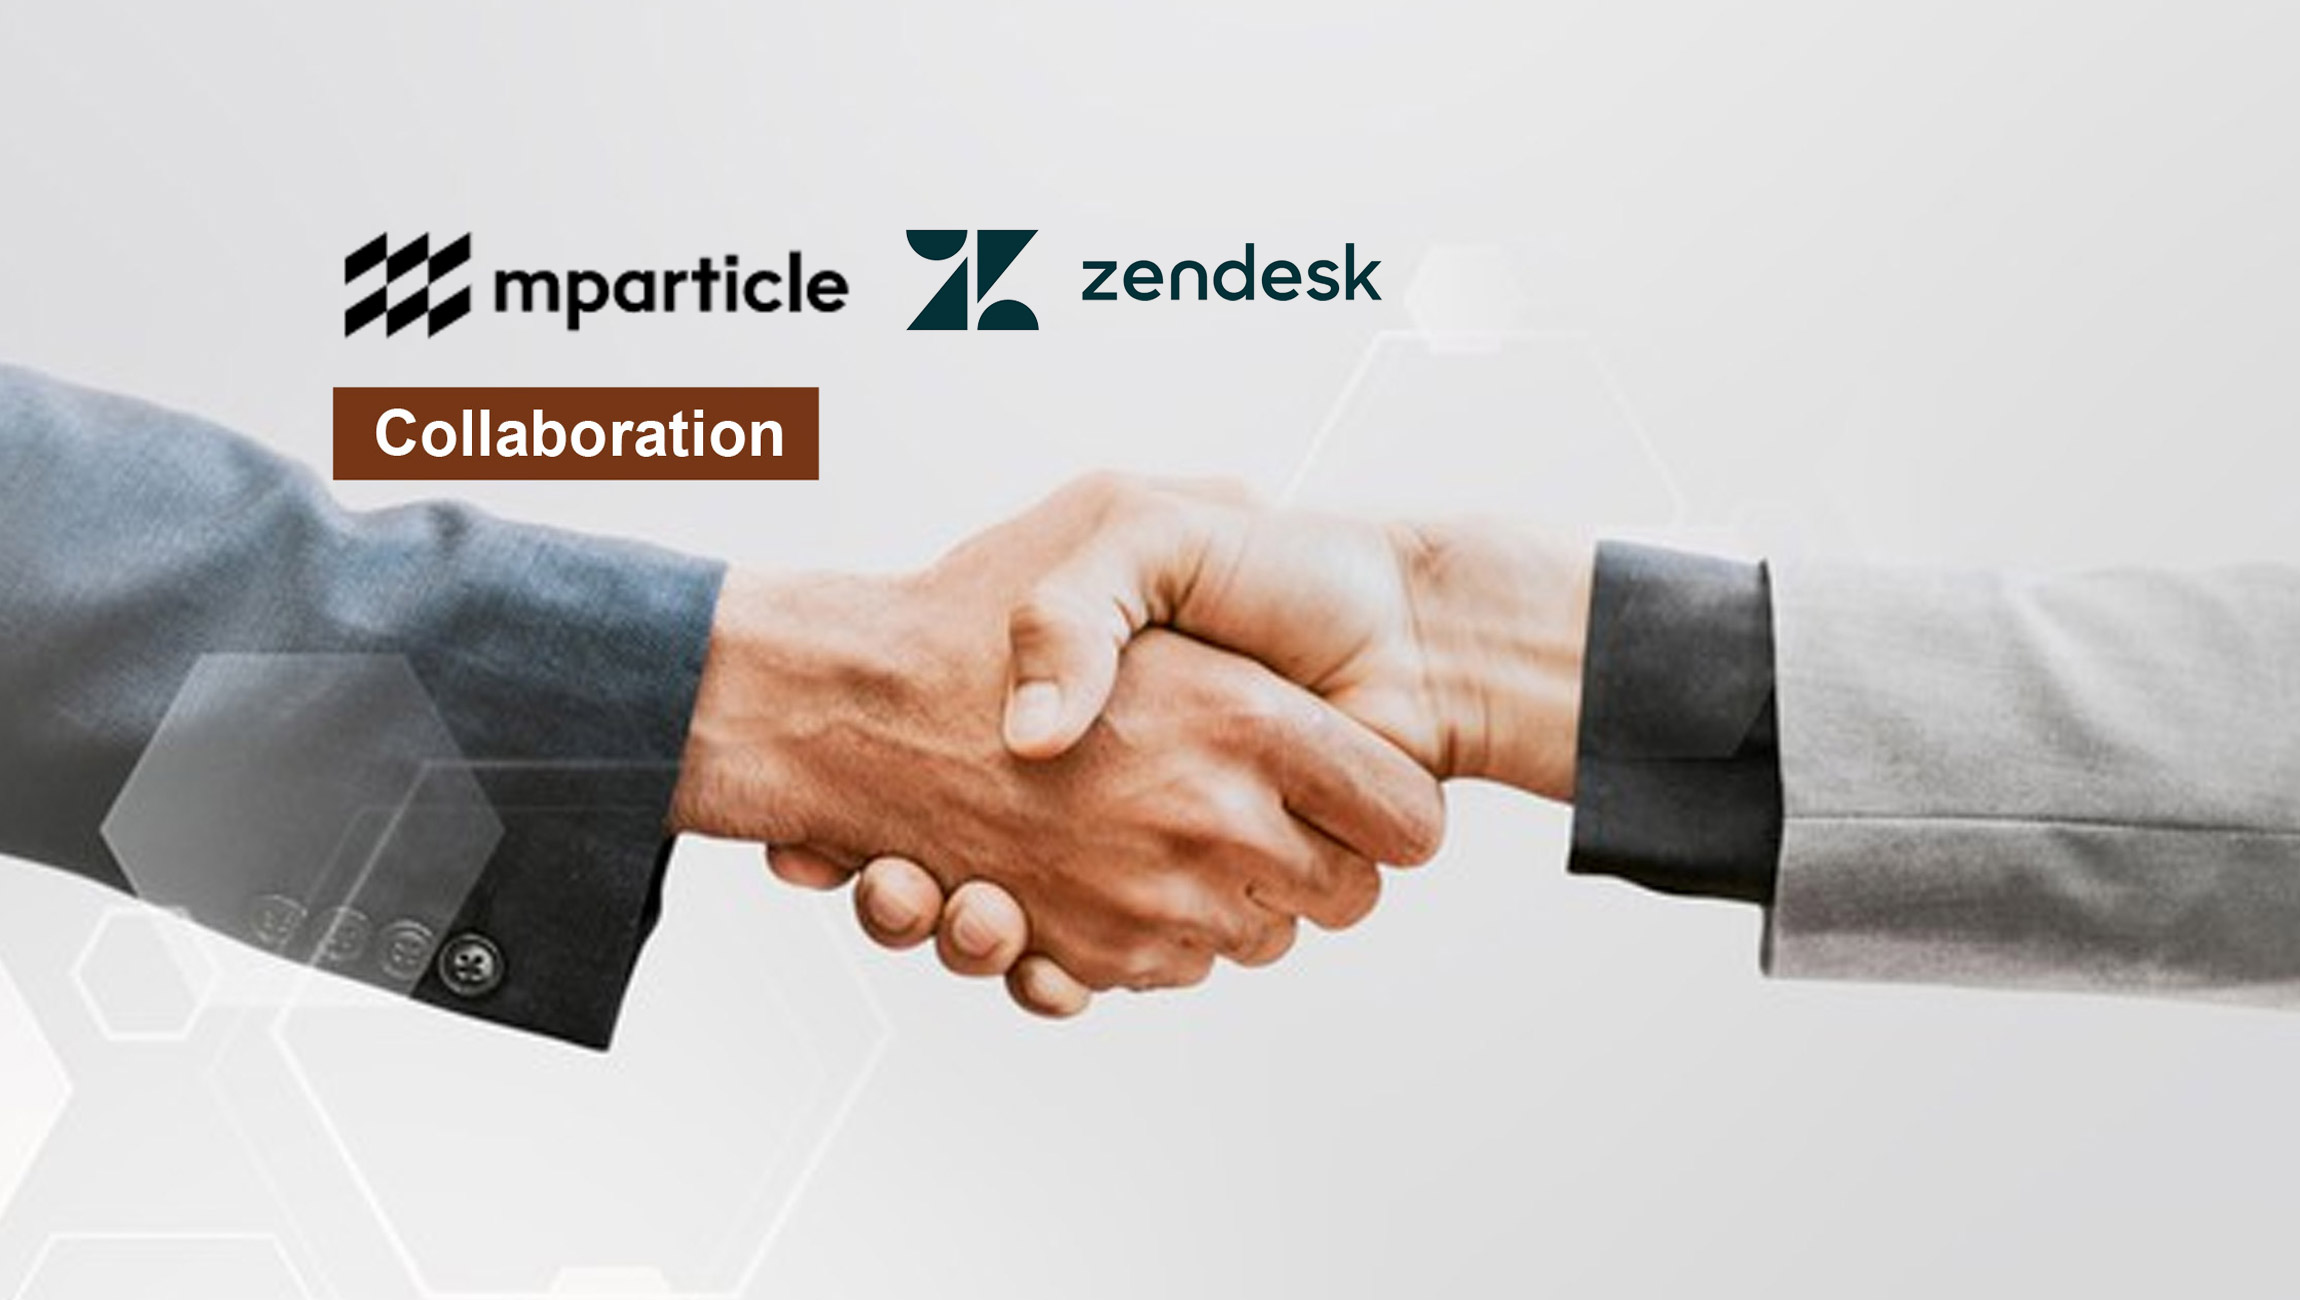 mParticle and Zendesk Collaborate to Deliver Personalized Customer Service